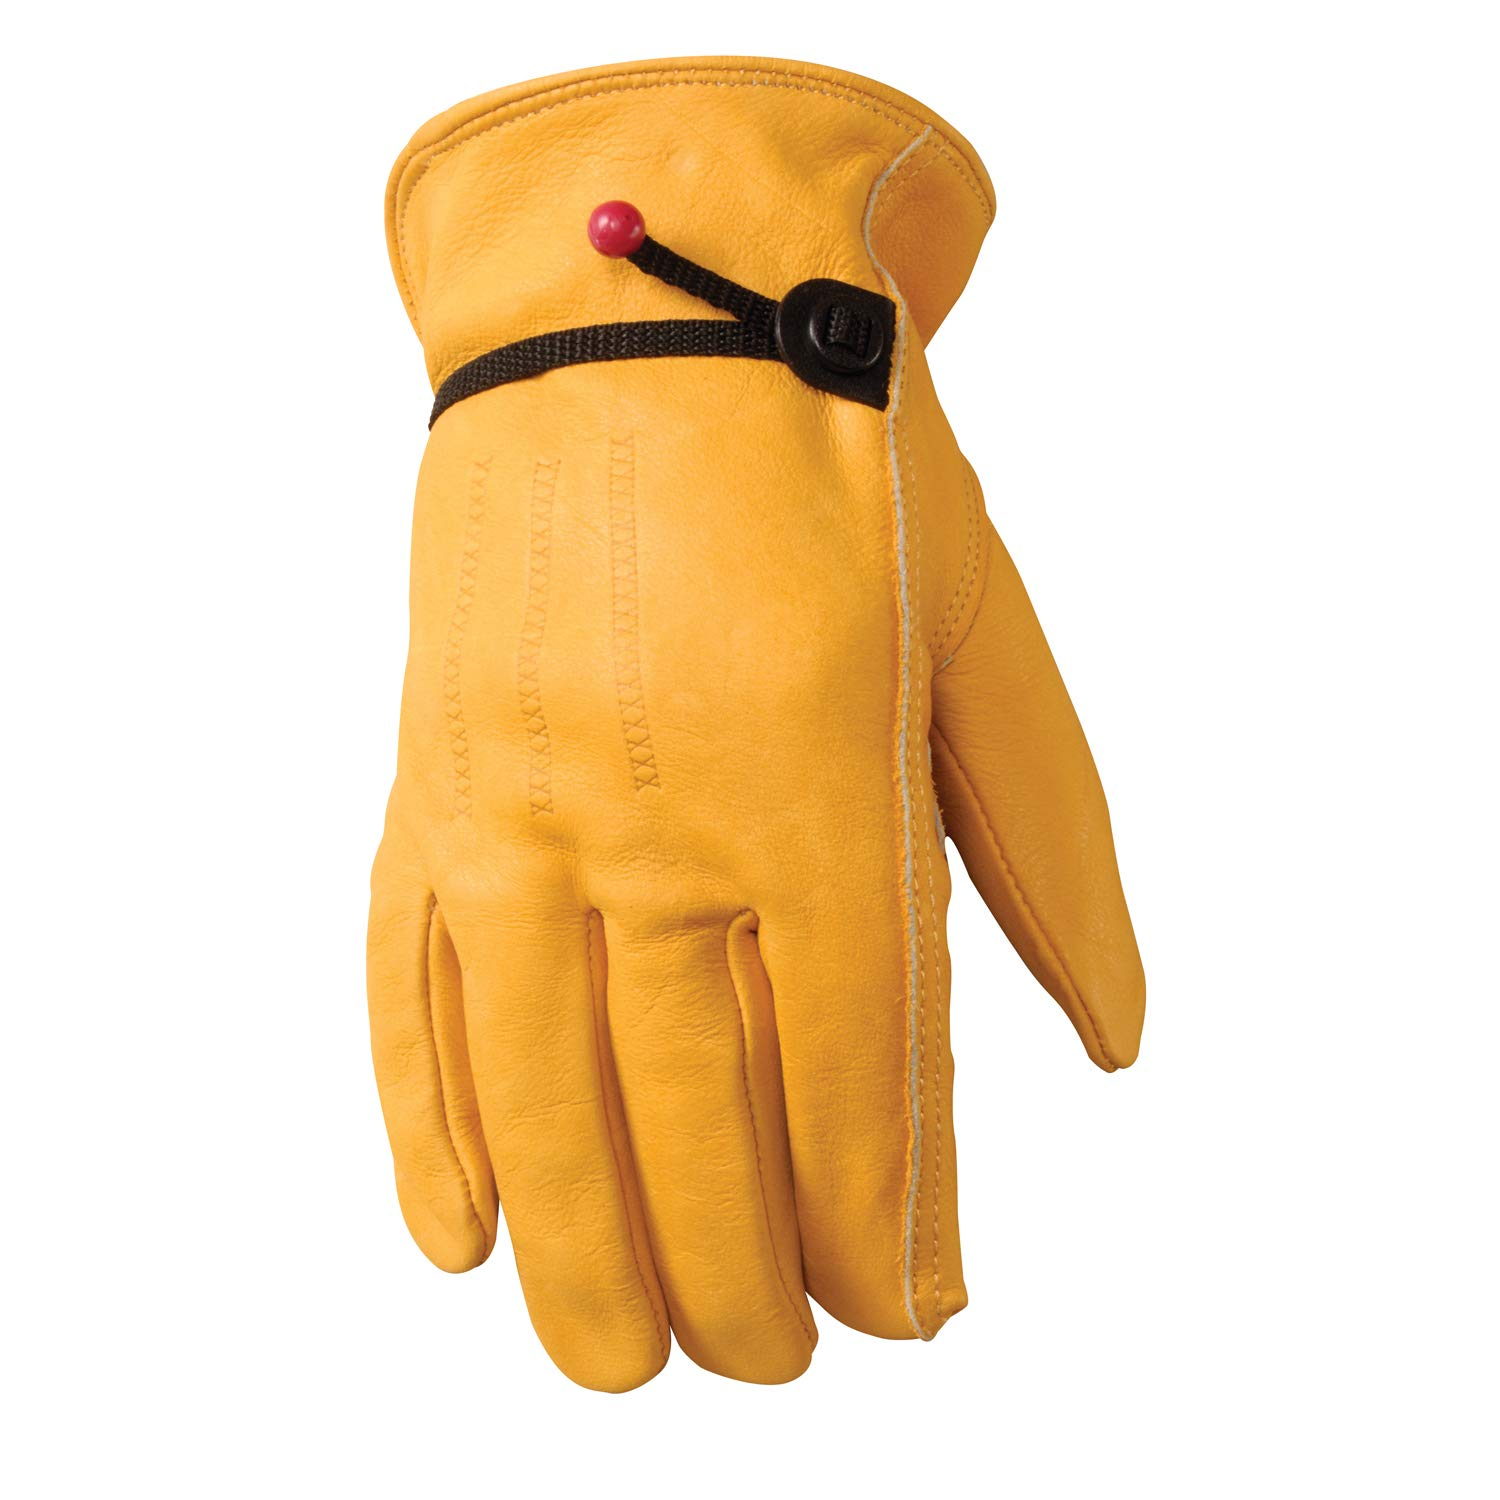 Men's Leather Work Gloves with Adjustable Wrist, Large (Wells Lamont 1132L) by Wells Lamont